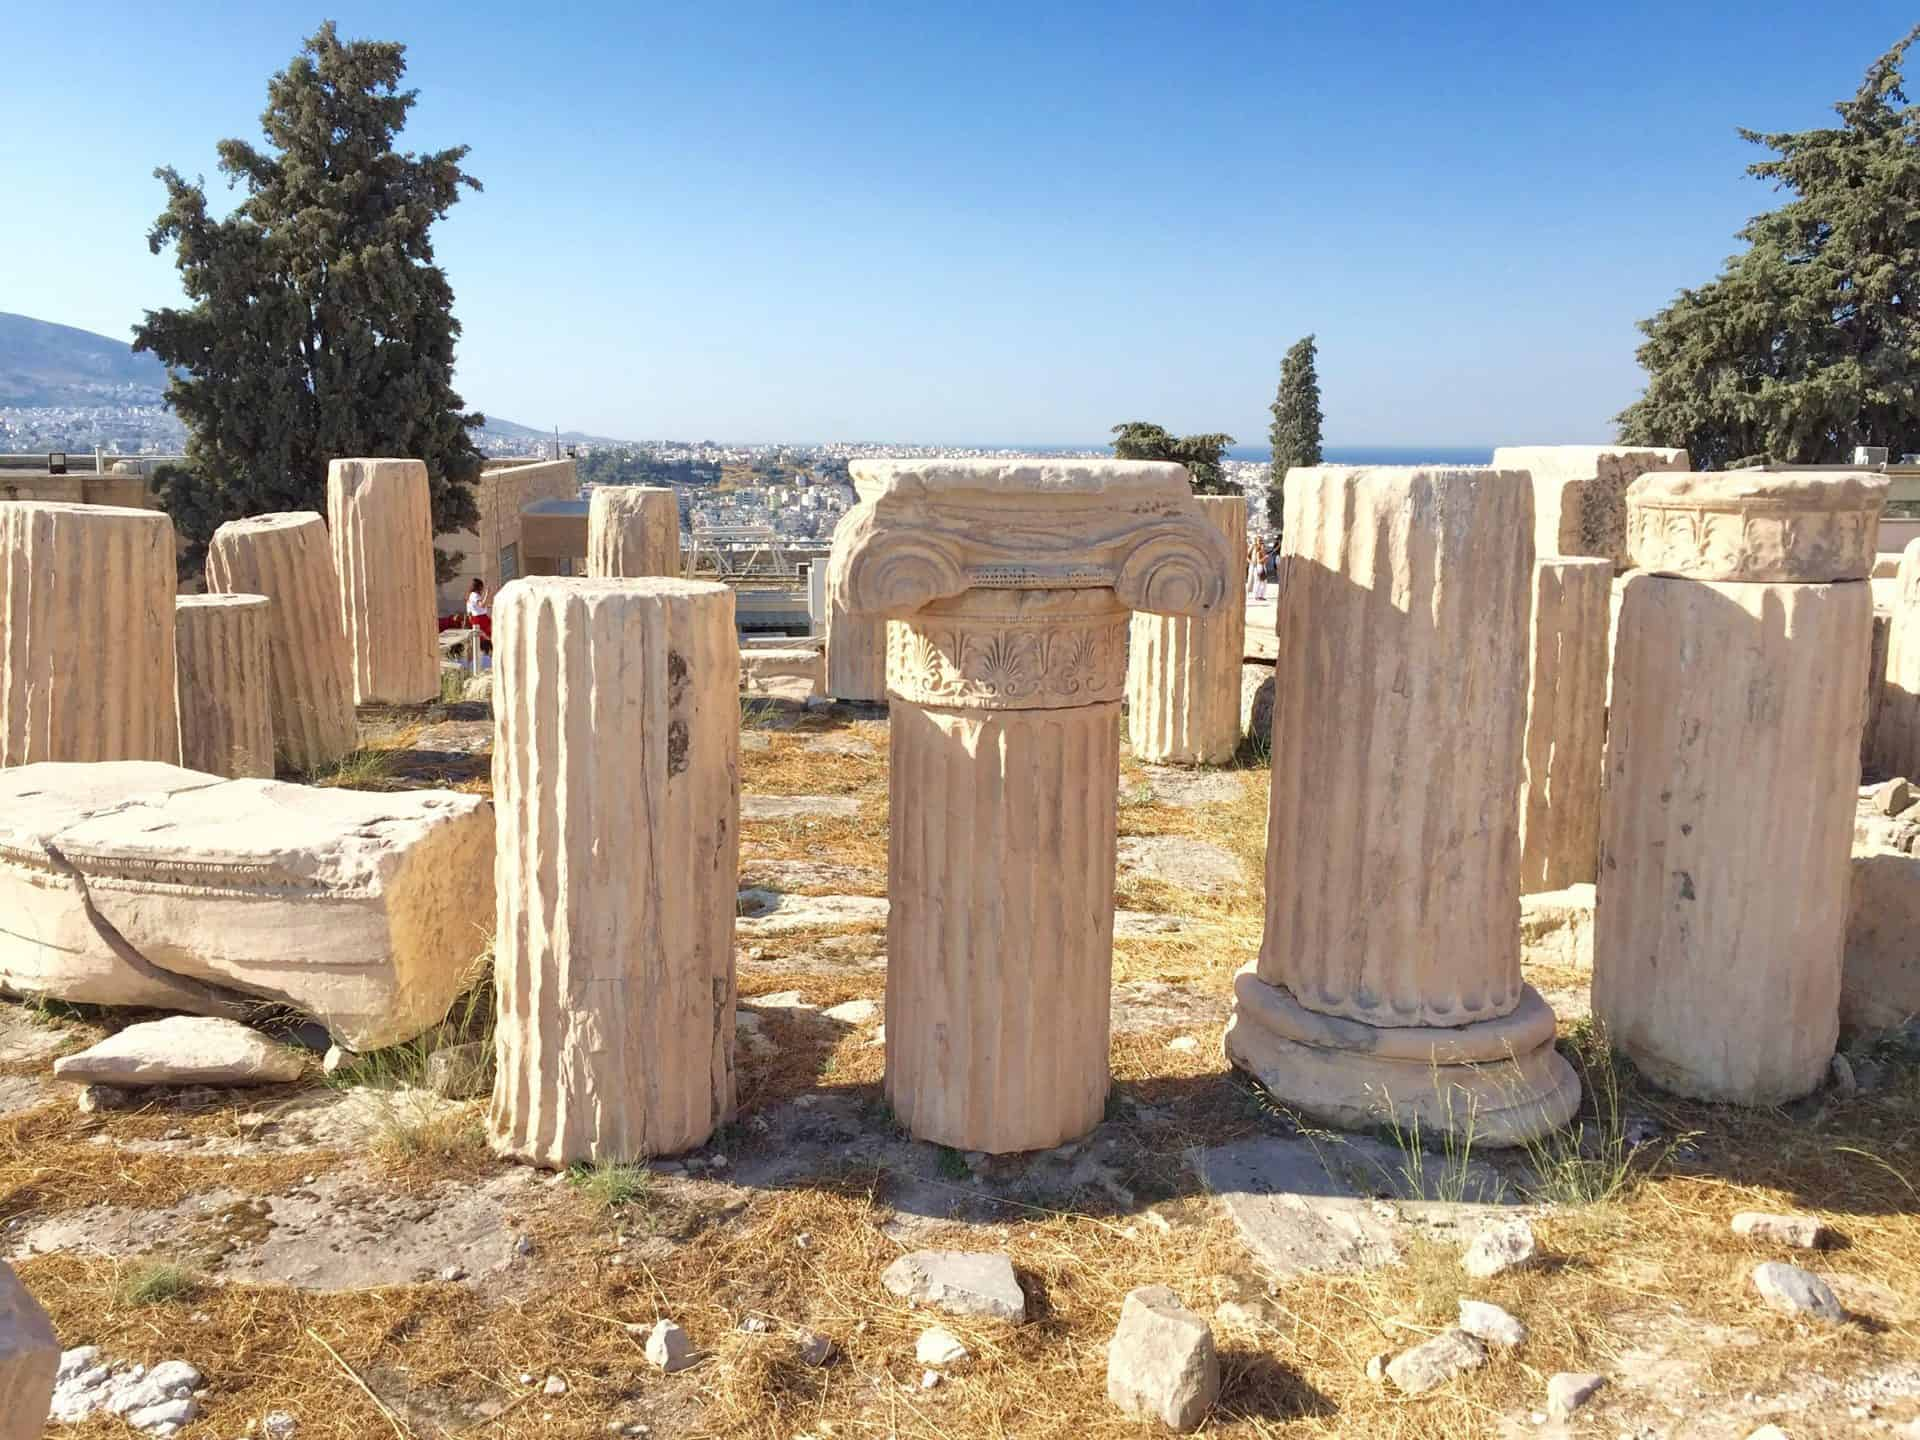 athens_acropolis14-The-Temple-of-Rome-and-Augustus-37.97171, 23.72744